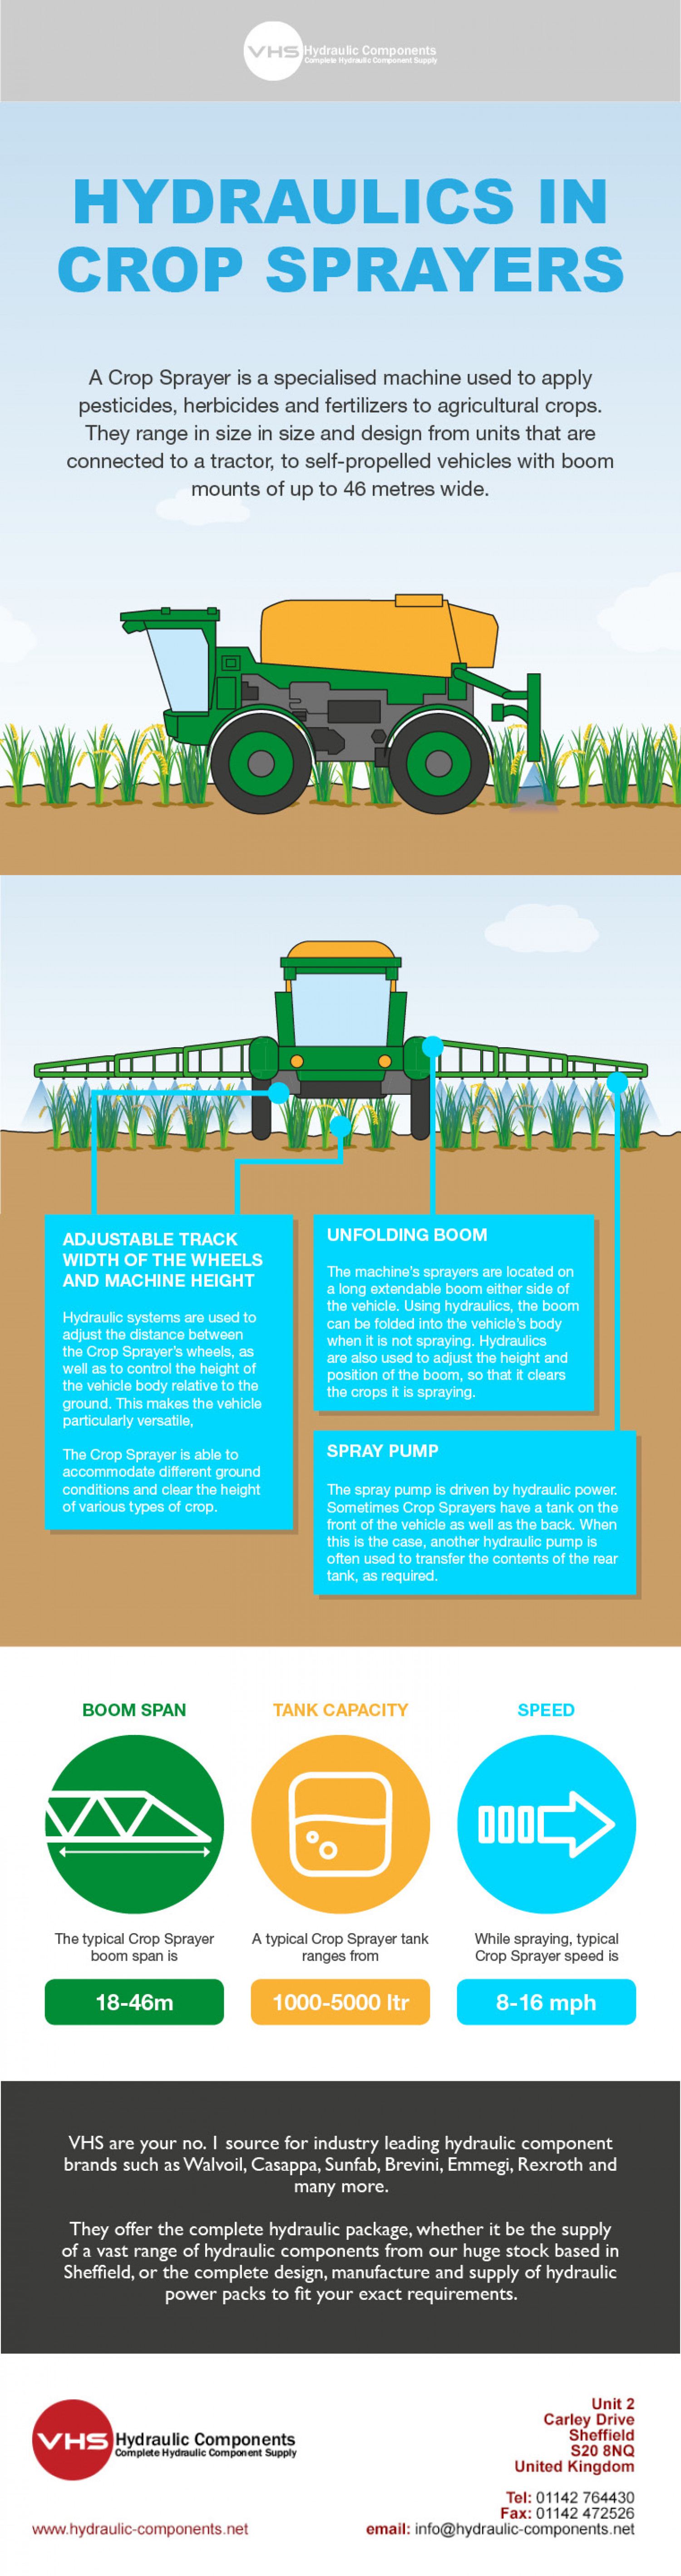 Hydraulics in Crops Sprayers Infographic